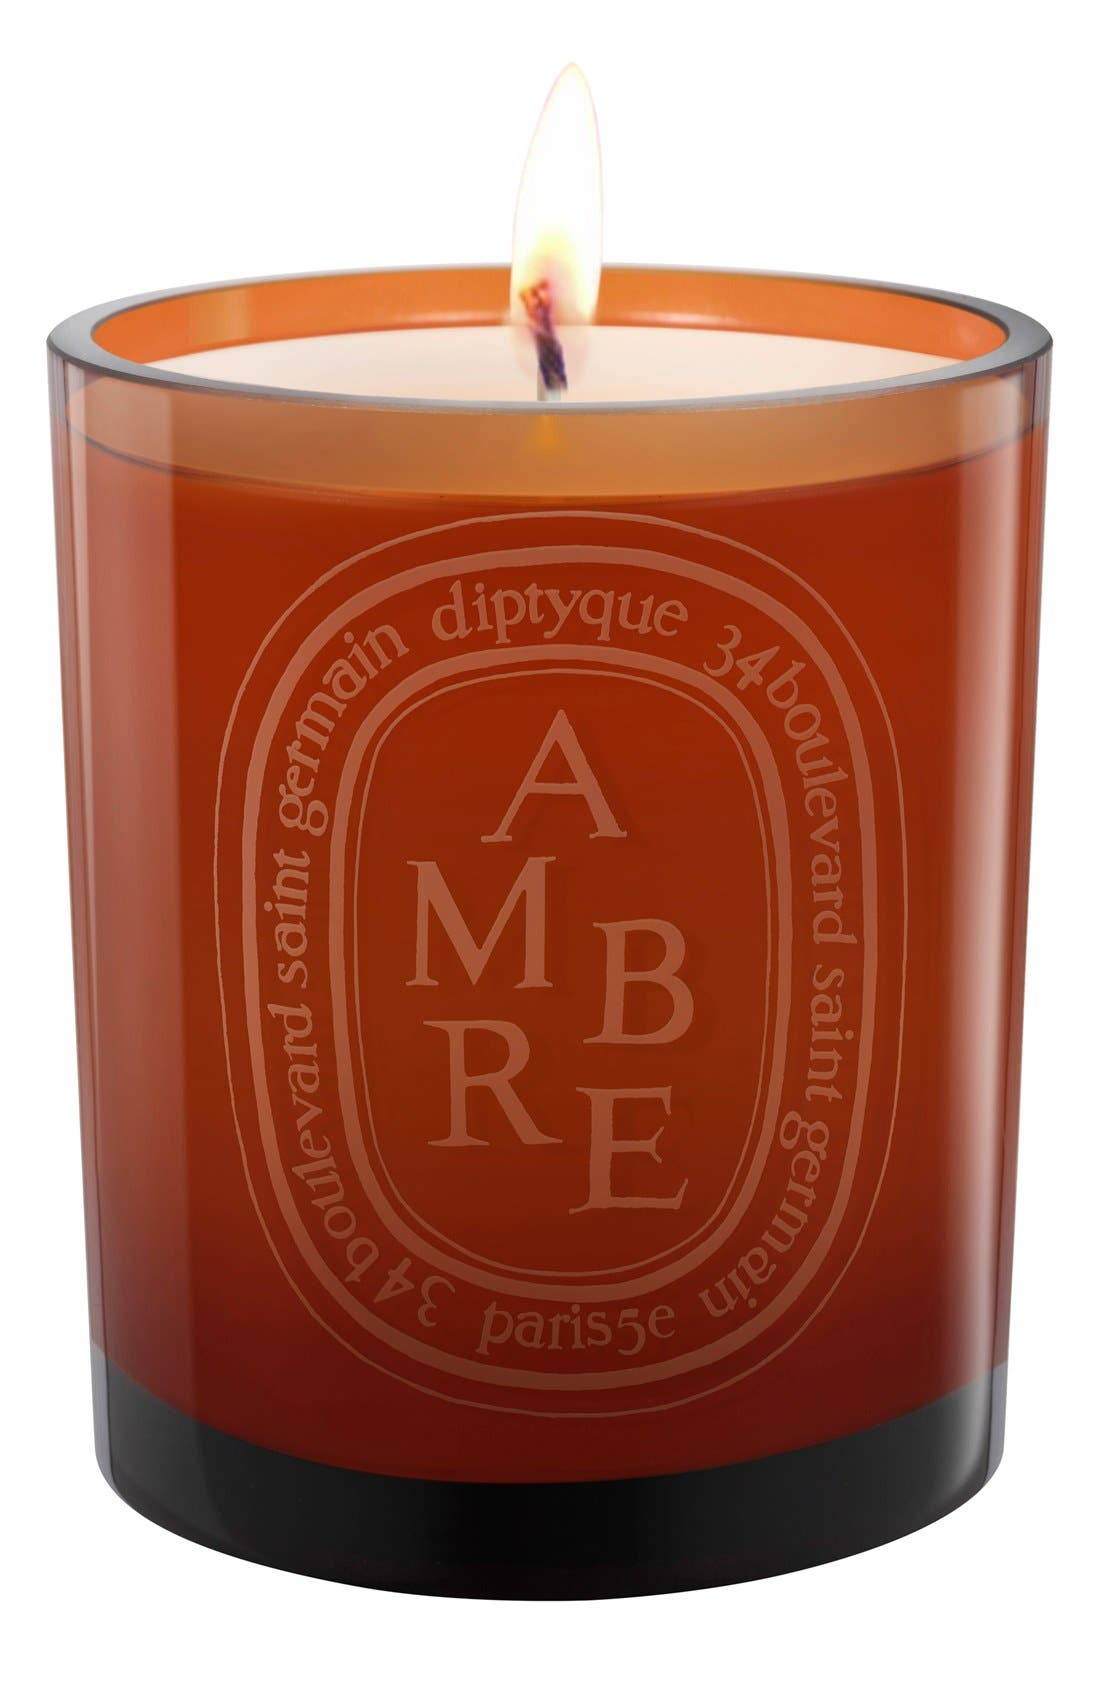 diptyque Ambre Large Scented Candle